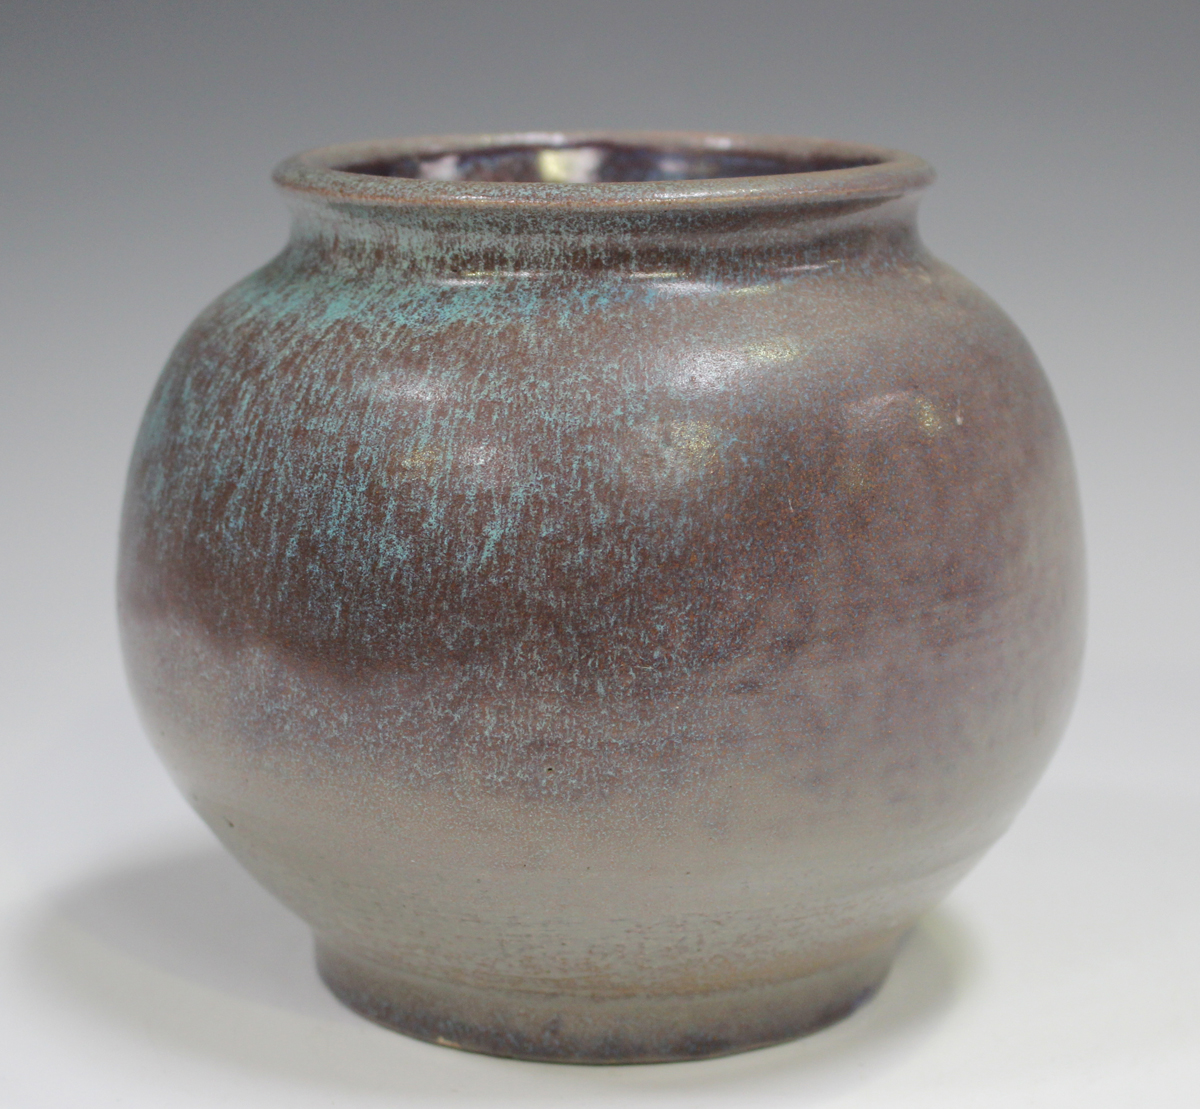 A studio pottery vase, early 21st century, of bulbous form, covered in a streaky purple and pale